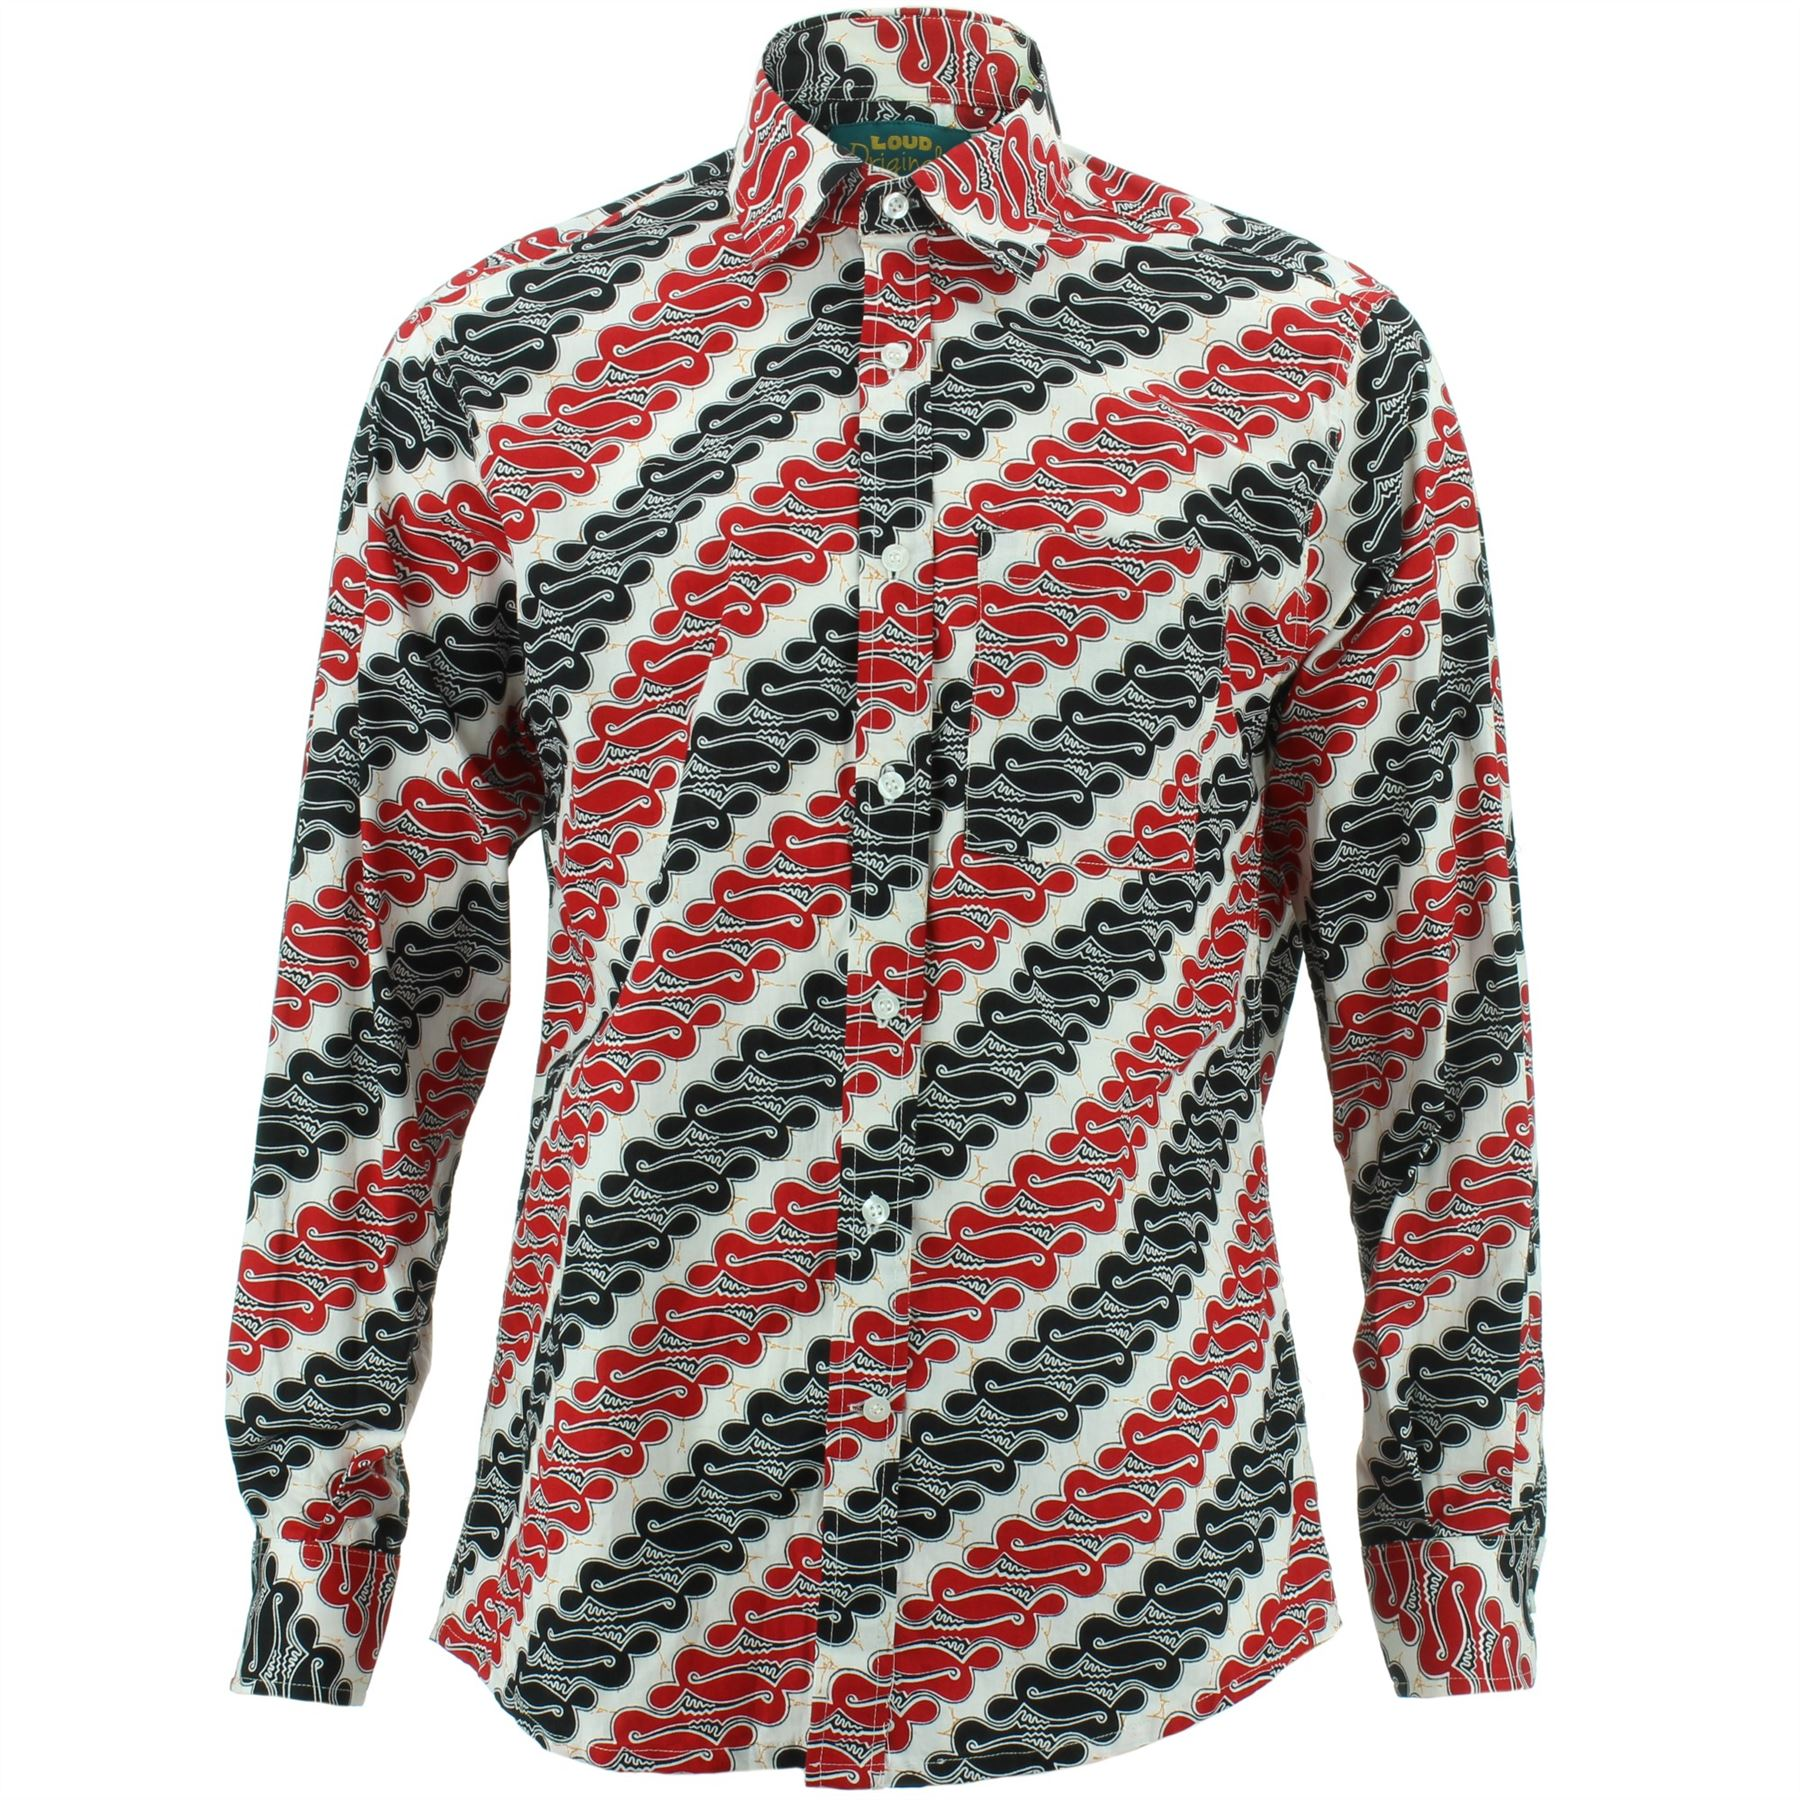 Mens Shirt Loud Originals REGULAR FIT Abstract White Retro Psychedelic Fancy